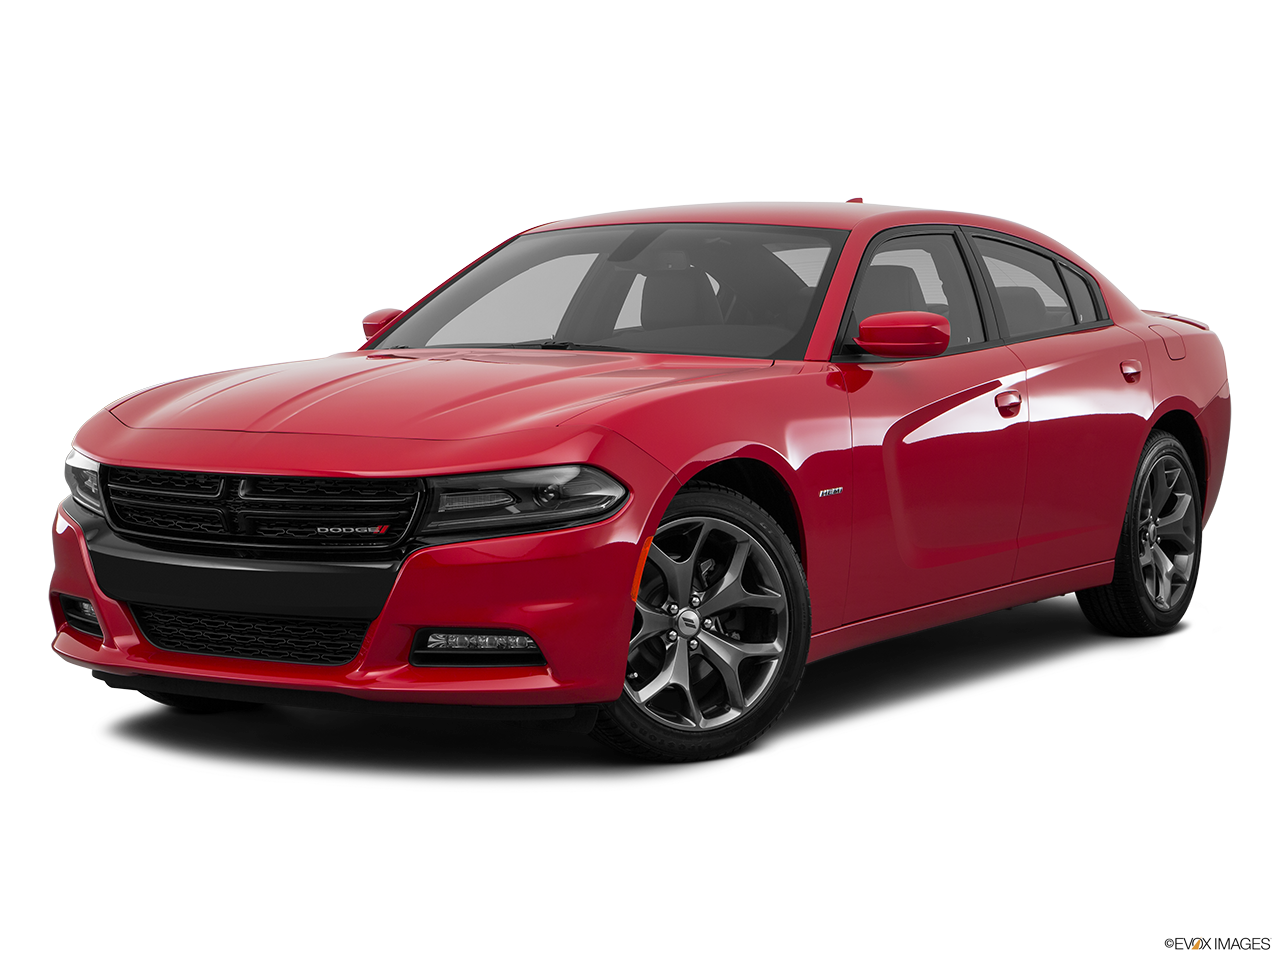 Test Drive A 2017 Dodge Charger at Benchmark Chrysler Dodge Jeep Ram in Birmingham